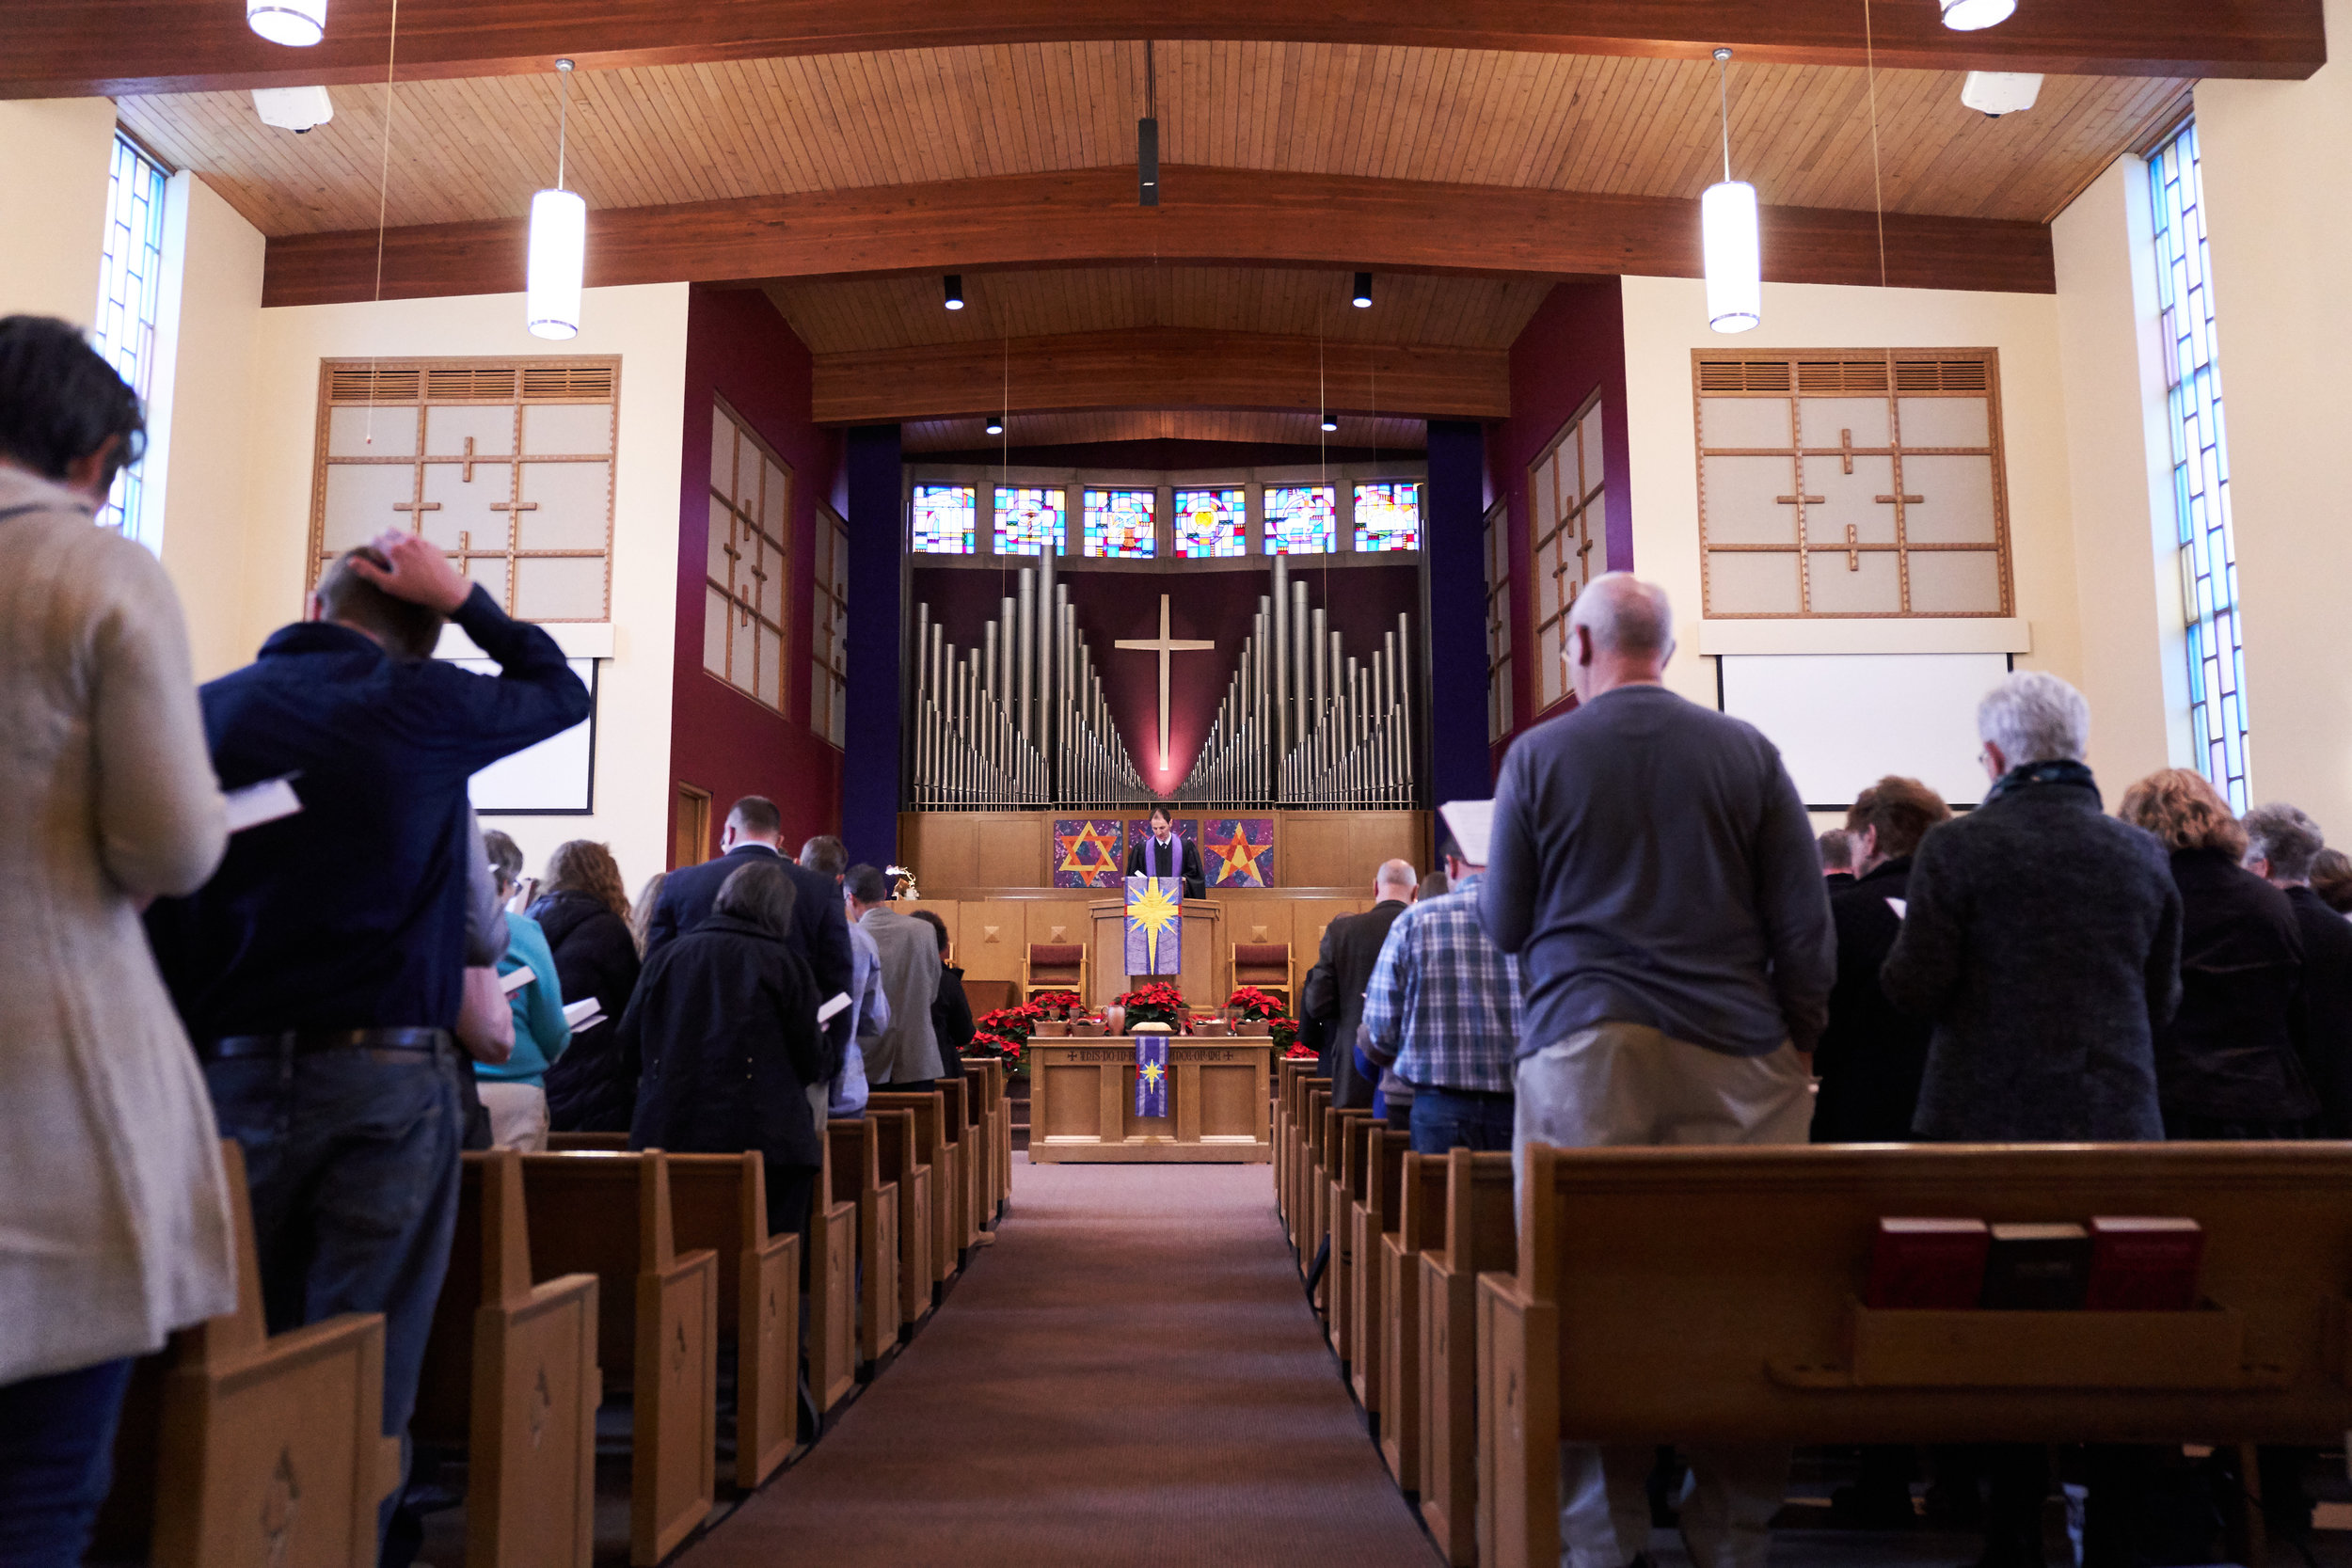 Our Vision - We strive to have vibrant & liturgical worship, lifelong faith formation & discipleship, an authentic & caring community, and to live out our calling to be kingdom builders.